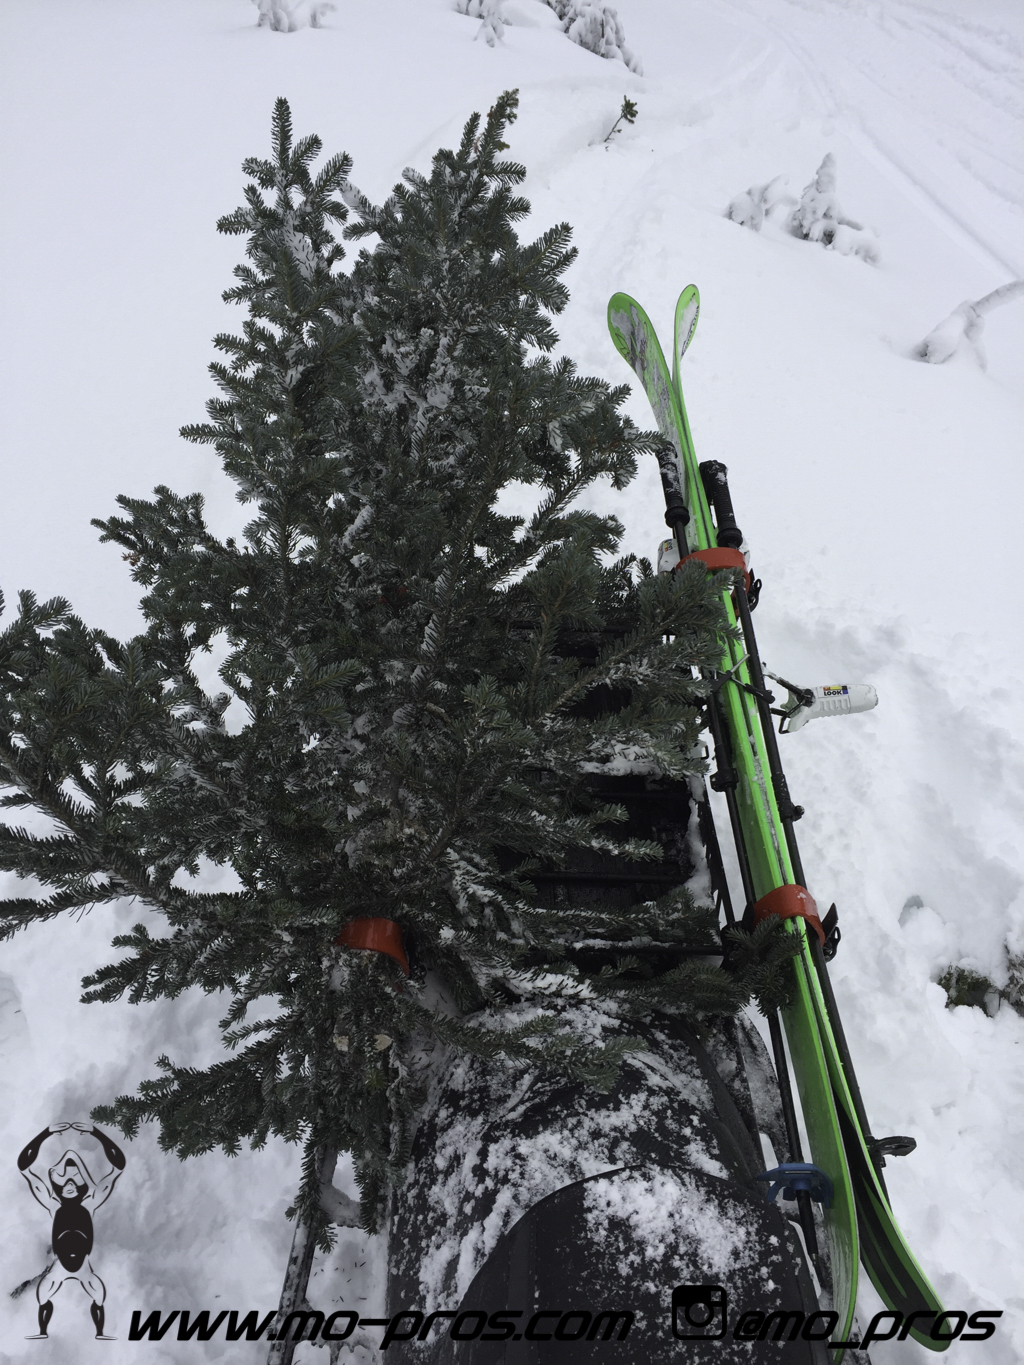 71_Backcountry _Backcountry United_CFR rack_Cheetah Factory Racing_gas Rack_Gear_Gun Rack_LinQ Snowboard Ski_Rack_Ski_Snowbike_snowboard_Snowboard rack_Snowboarding_Snowmobile_snowmobile bag_timbersl.jpg